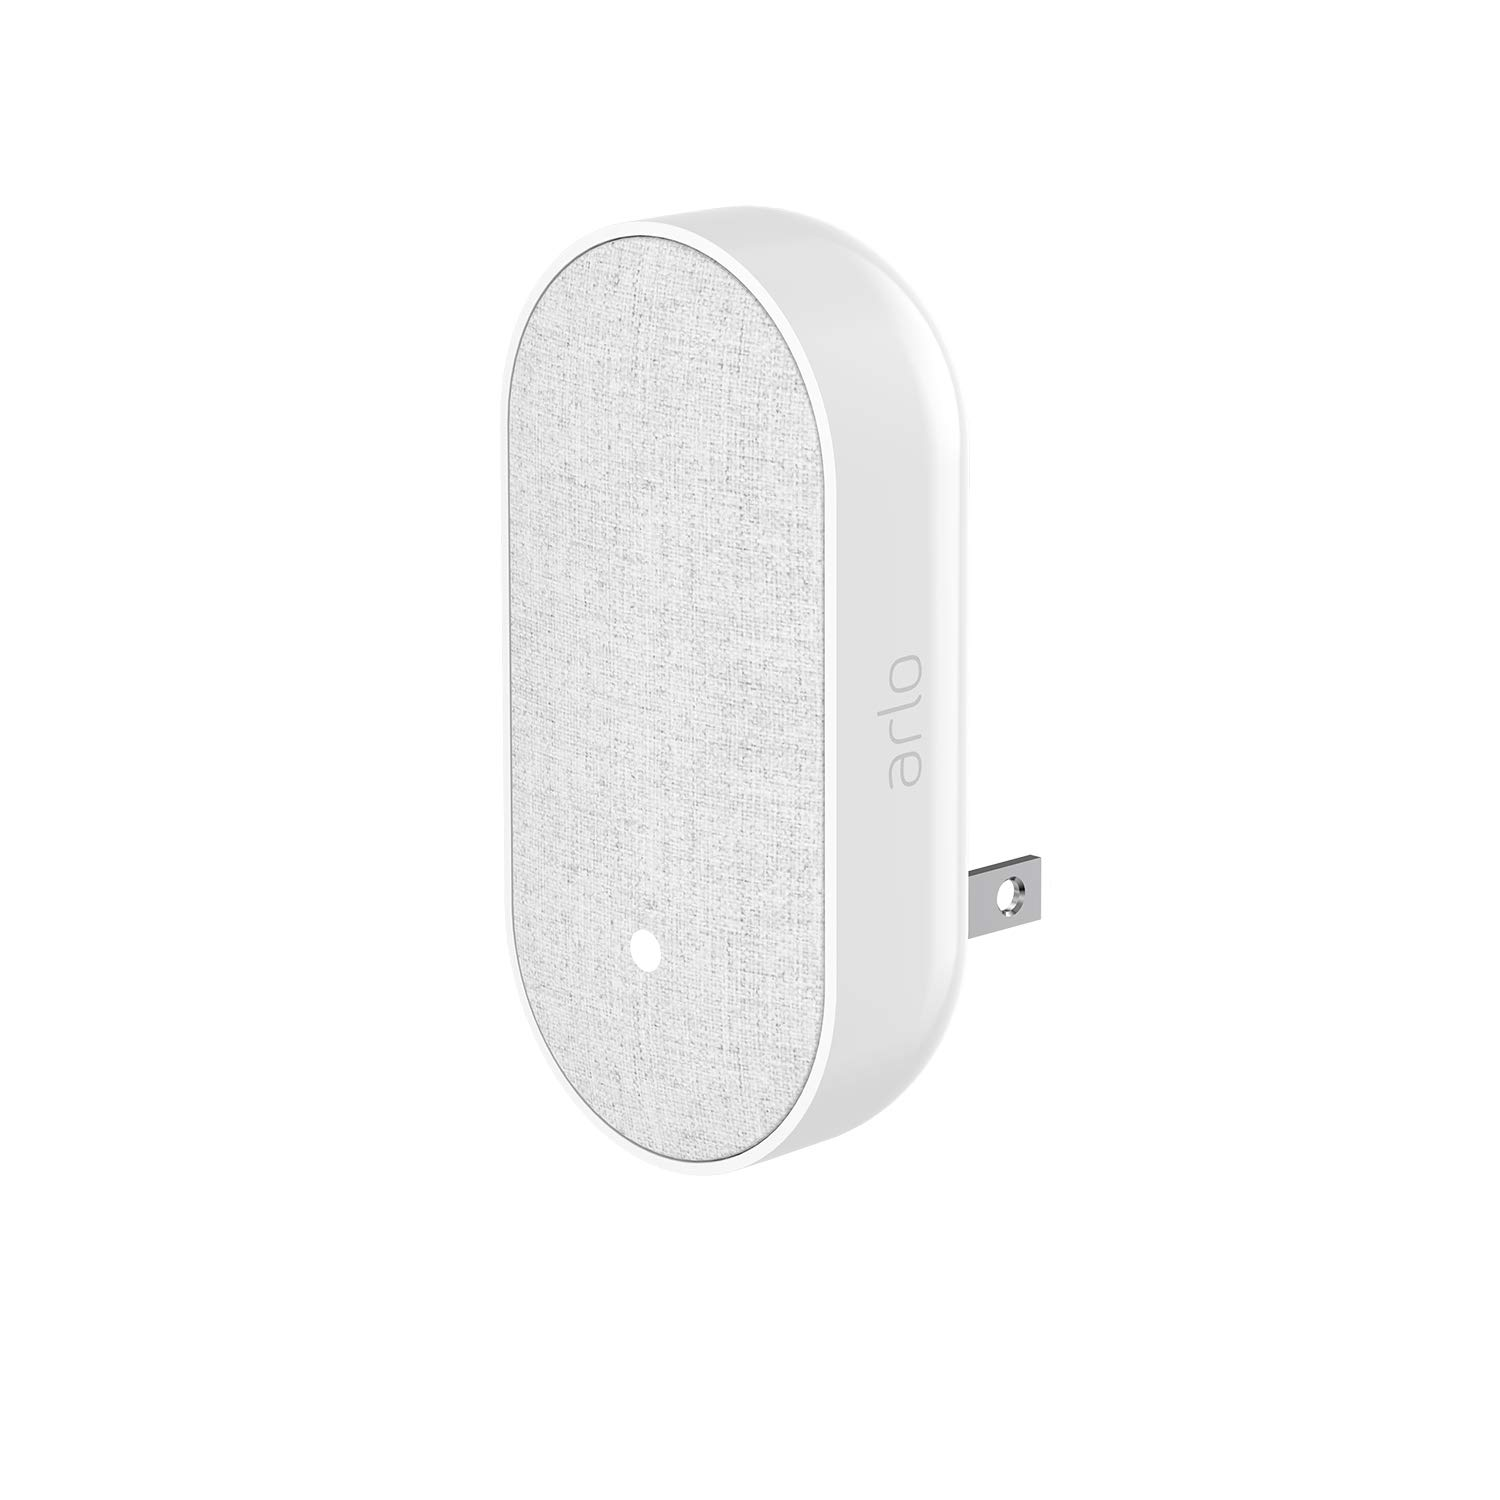 Arlo Chime - Wire-Free, Smart Home Security, Siren and Silent Mode (AC1001) by Arlo Technologies, Inc